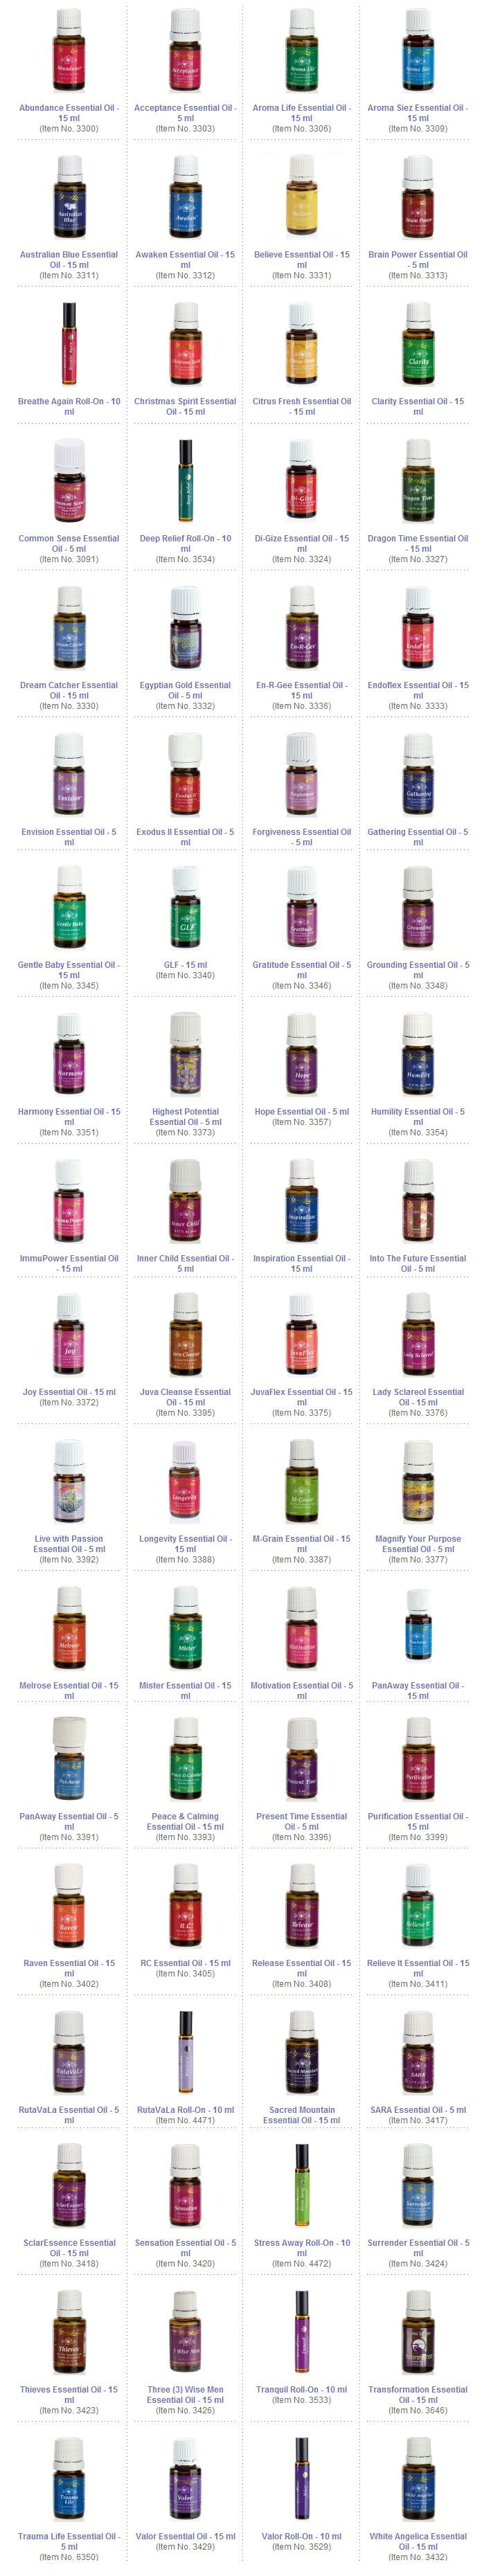 720 Best Young Living Essential Oils 1650372 Images On Pinterest